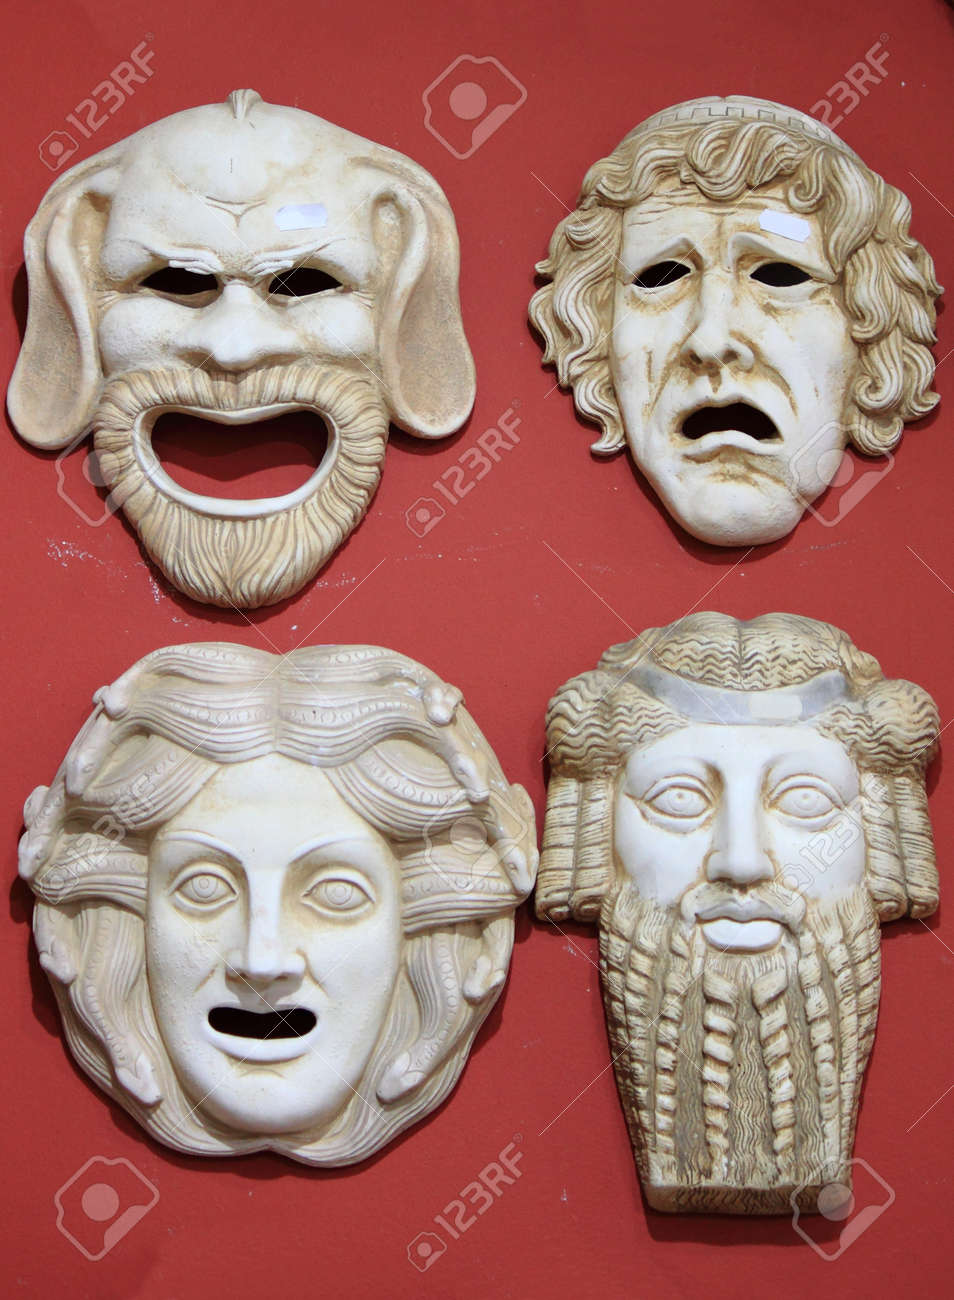 Ancient Greece Theatre Masks In Marble Stone Stock Photo, Picture ...